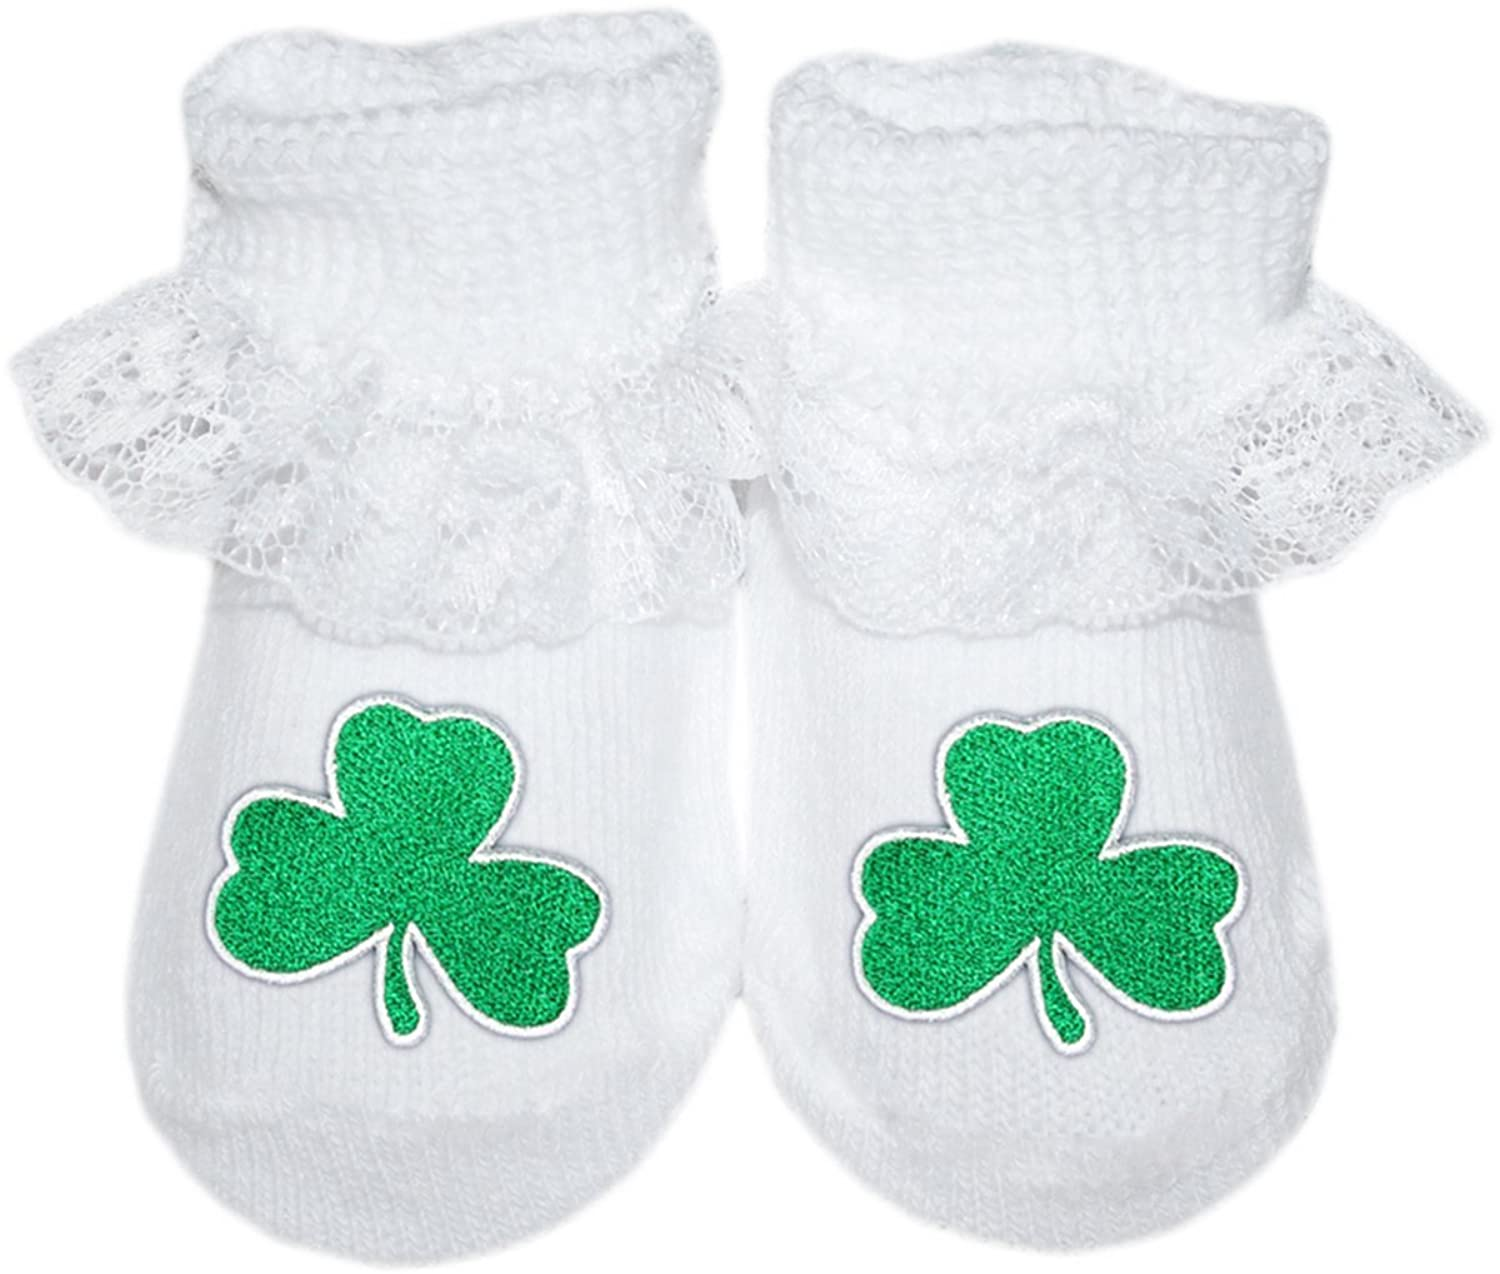 a2fe0305843 Irish Baby Shamrock Lace Booties  5WefJ1411795  -  13.99